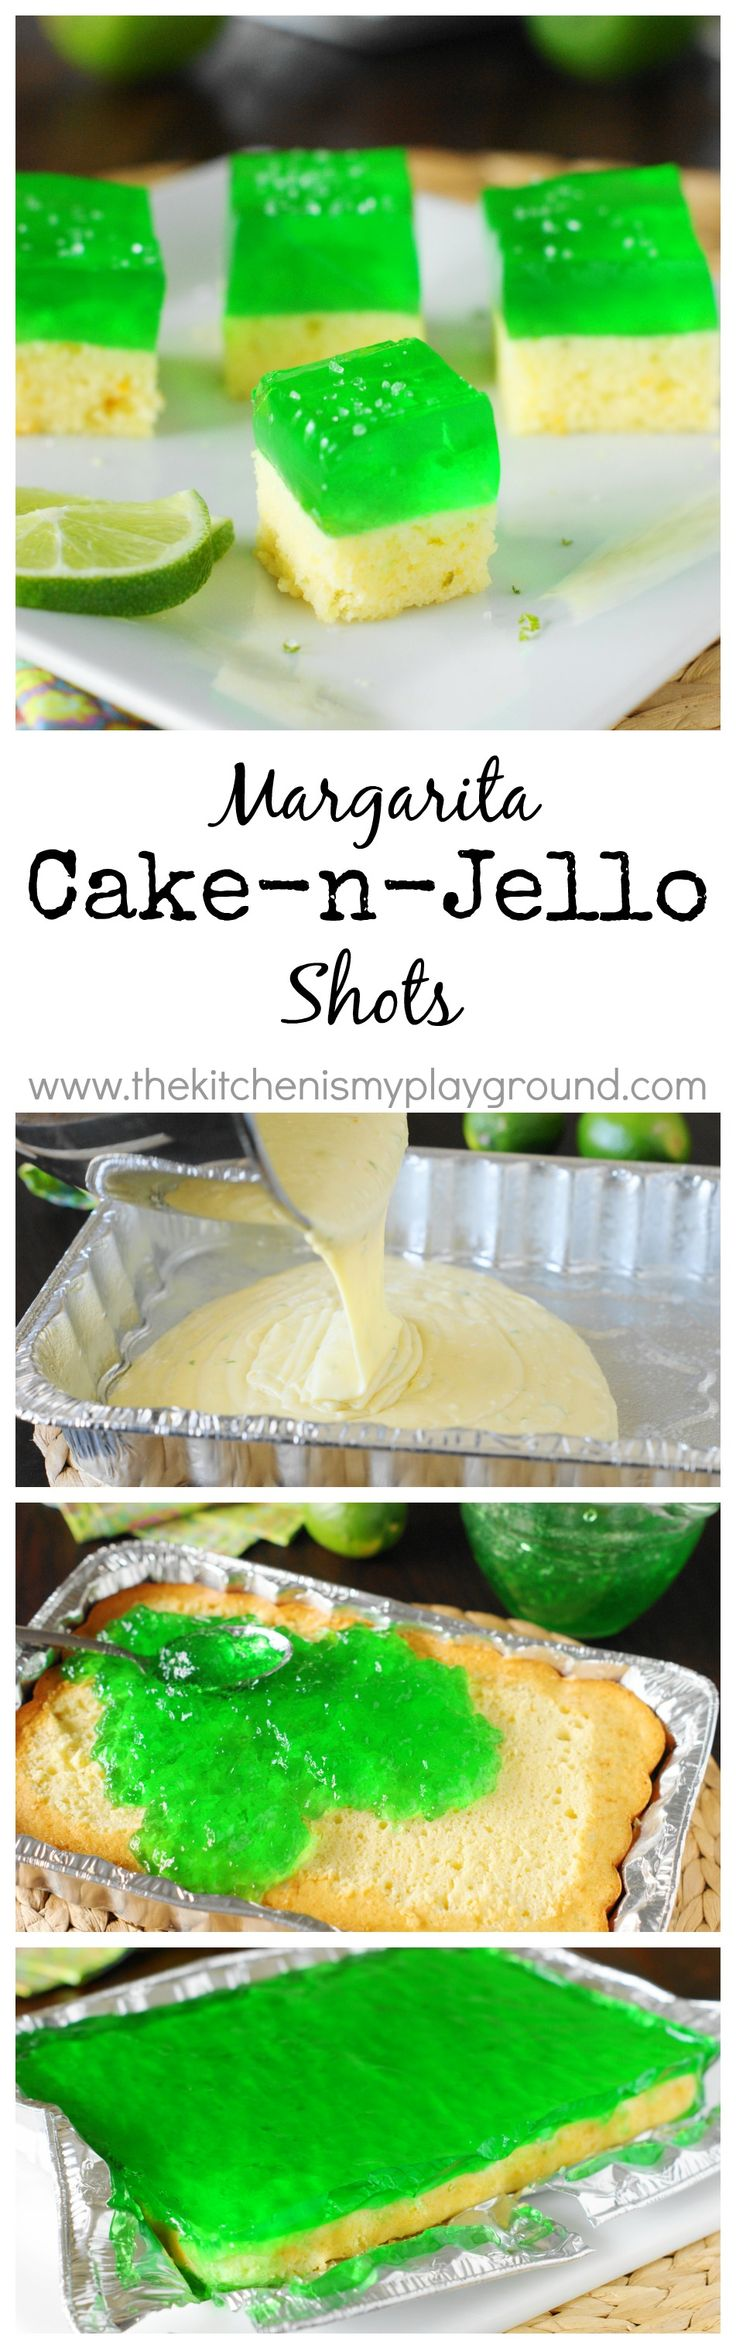 Margarita Cake-n-Jello Shots ~ combine Margaritas, cake, & a Jell-o shot all into one fun-and-festive little party bite!   www.thekitchenismyplayground.com